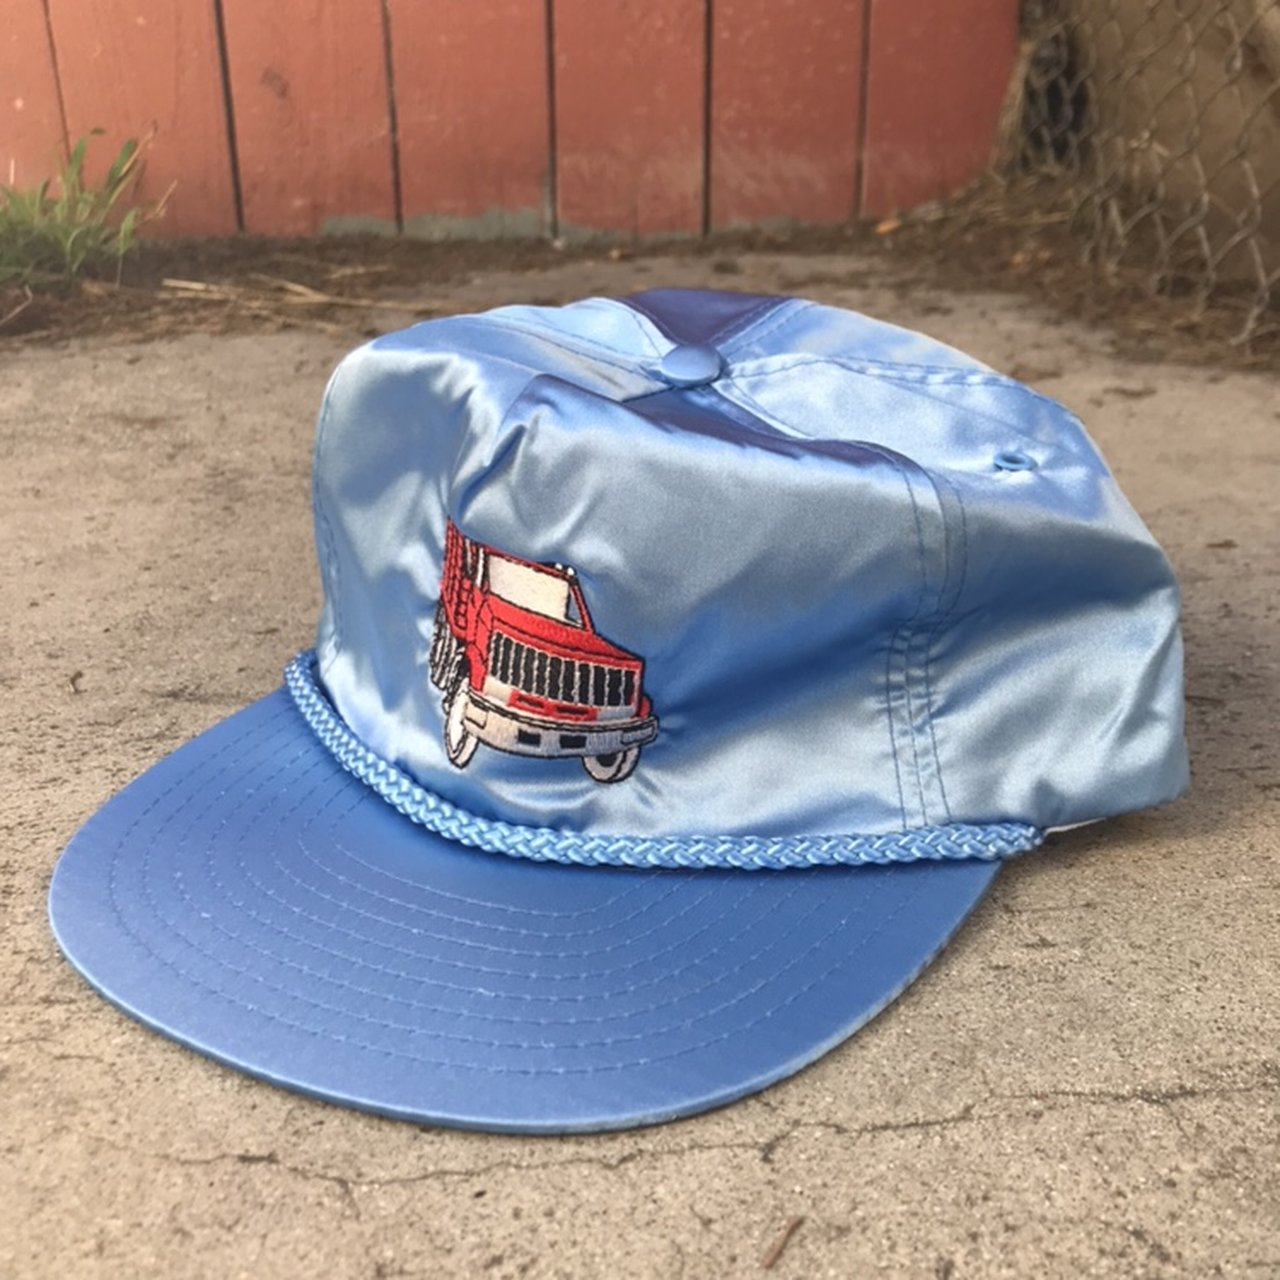 Vintage Nissin blue trucker hat with red truck embroidered - Depop 80166d550f8c